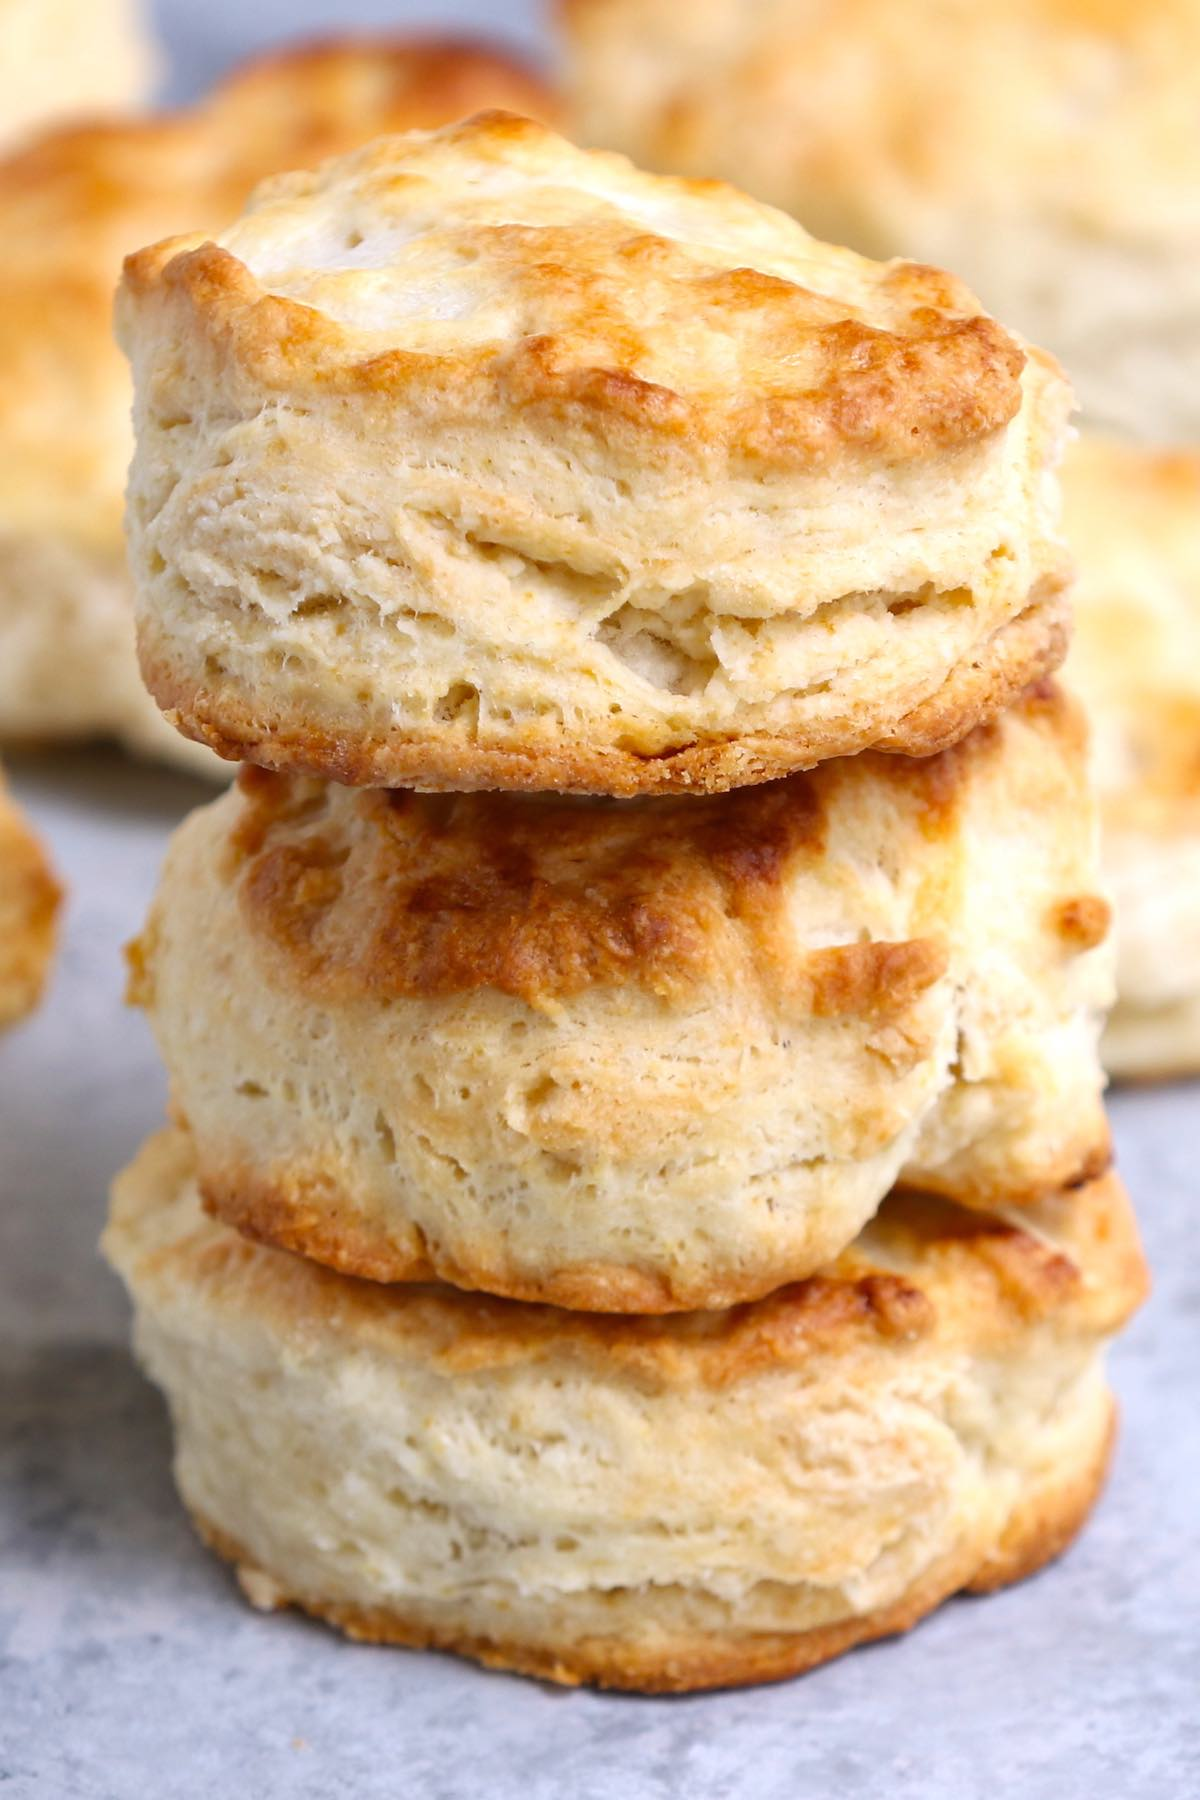 Closeup of Popeyes buttermilk biscuits showing the flaky texture.